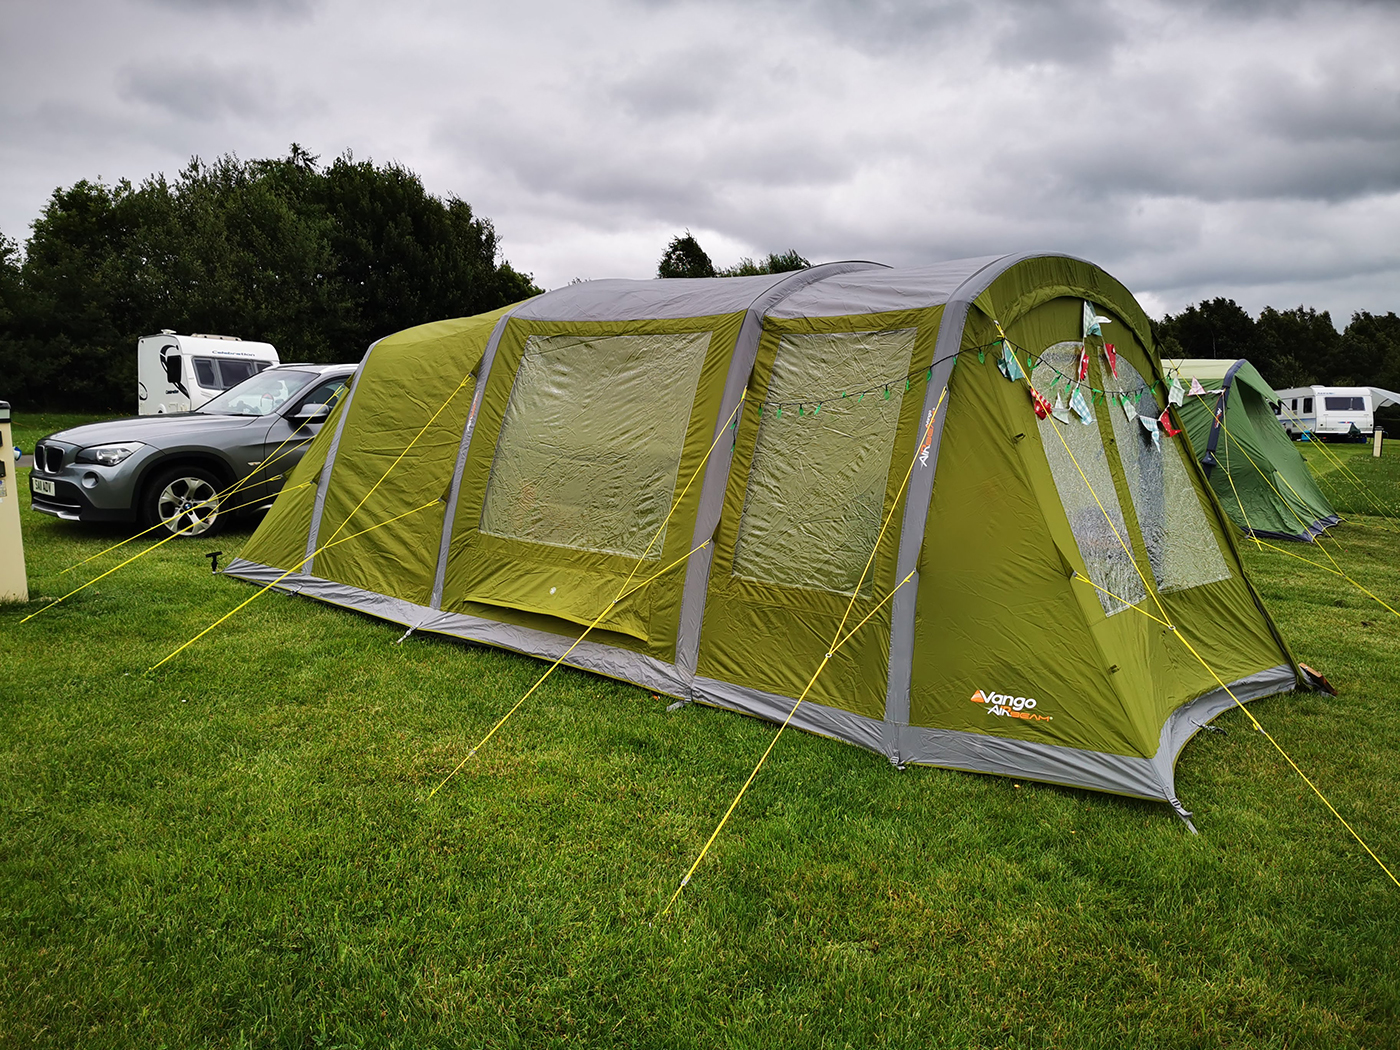 Tent Reviews Putting Camping Tents to